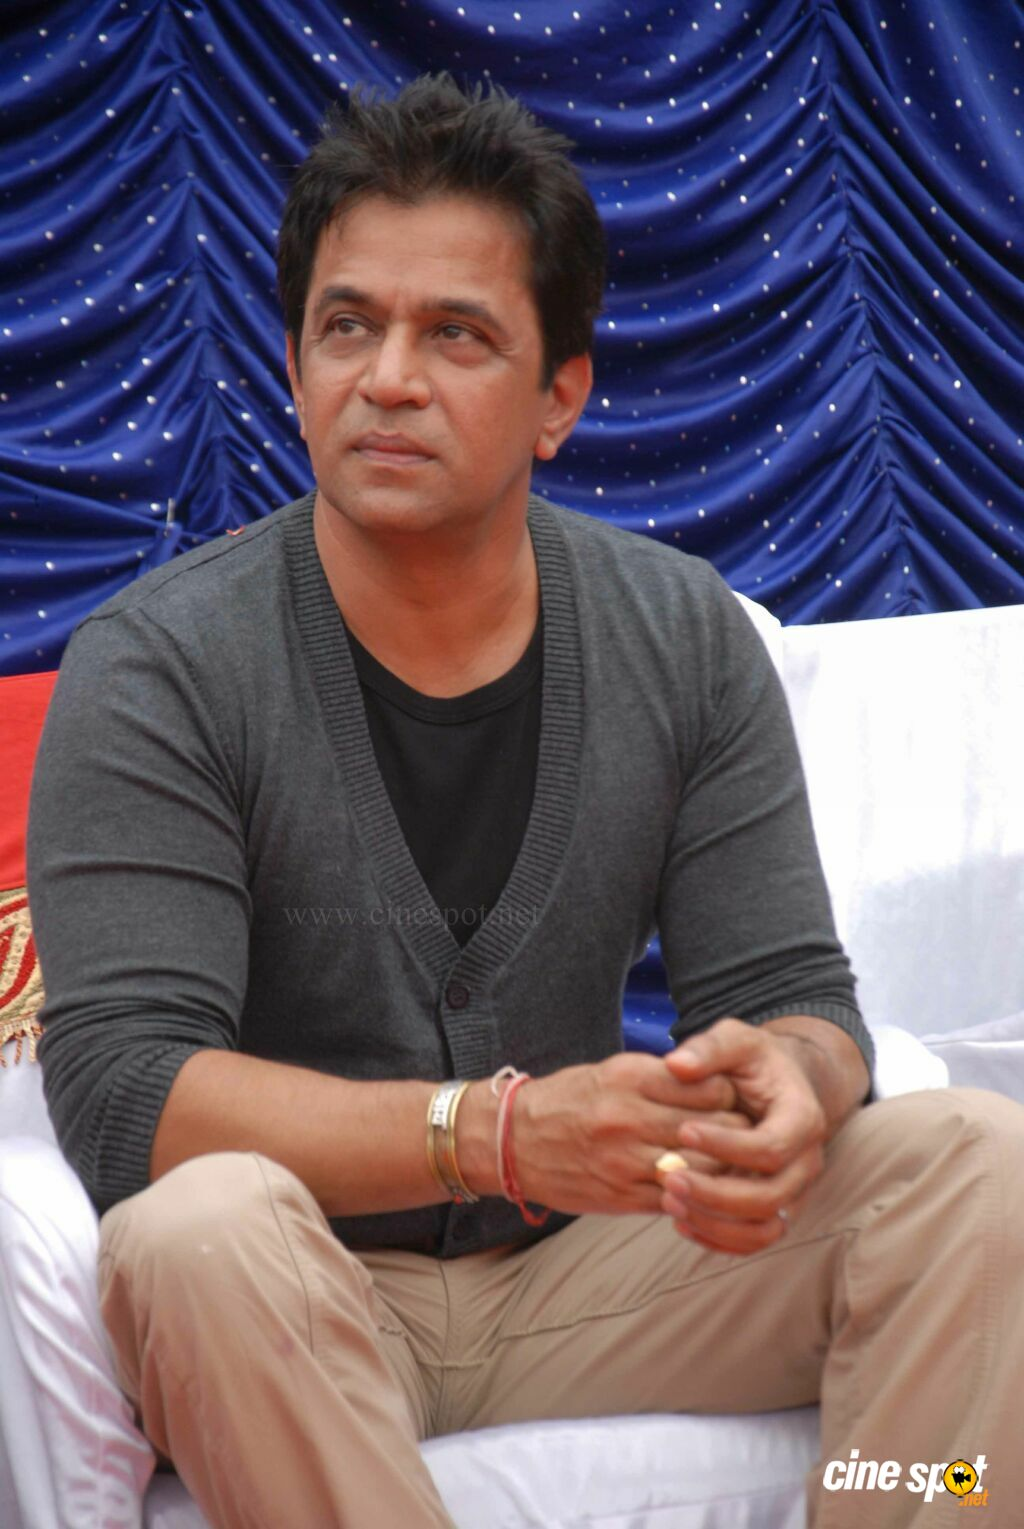 arjun sarja songsarjun sarja wife, arjun sarja movies, arjun sarja family, arjun sarja net worth, arjun sarja caste, arjun sarja father, arjun sarja family photos, arjun sarja daughter, arjun sarja tamil movies list, arjun sarja twitter, arjun sarja telugu movies, arjun sarja height, arjun sarja photos, arjun sarja songs, arjun sarja date of birth, arjun sarja new movie, arjun sarja daughter photos, arjun sarja brother, arjun sarja biography, arjun sarja telugu movies list